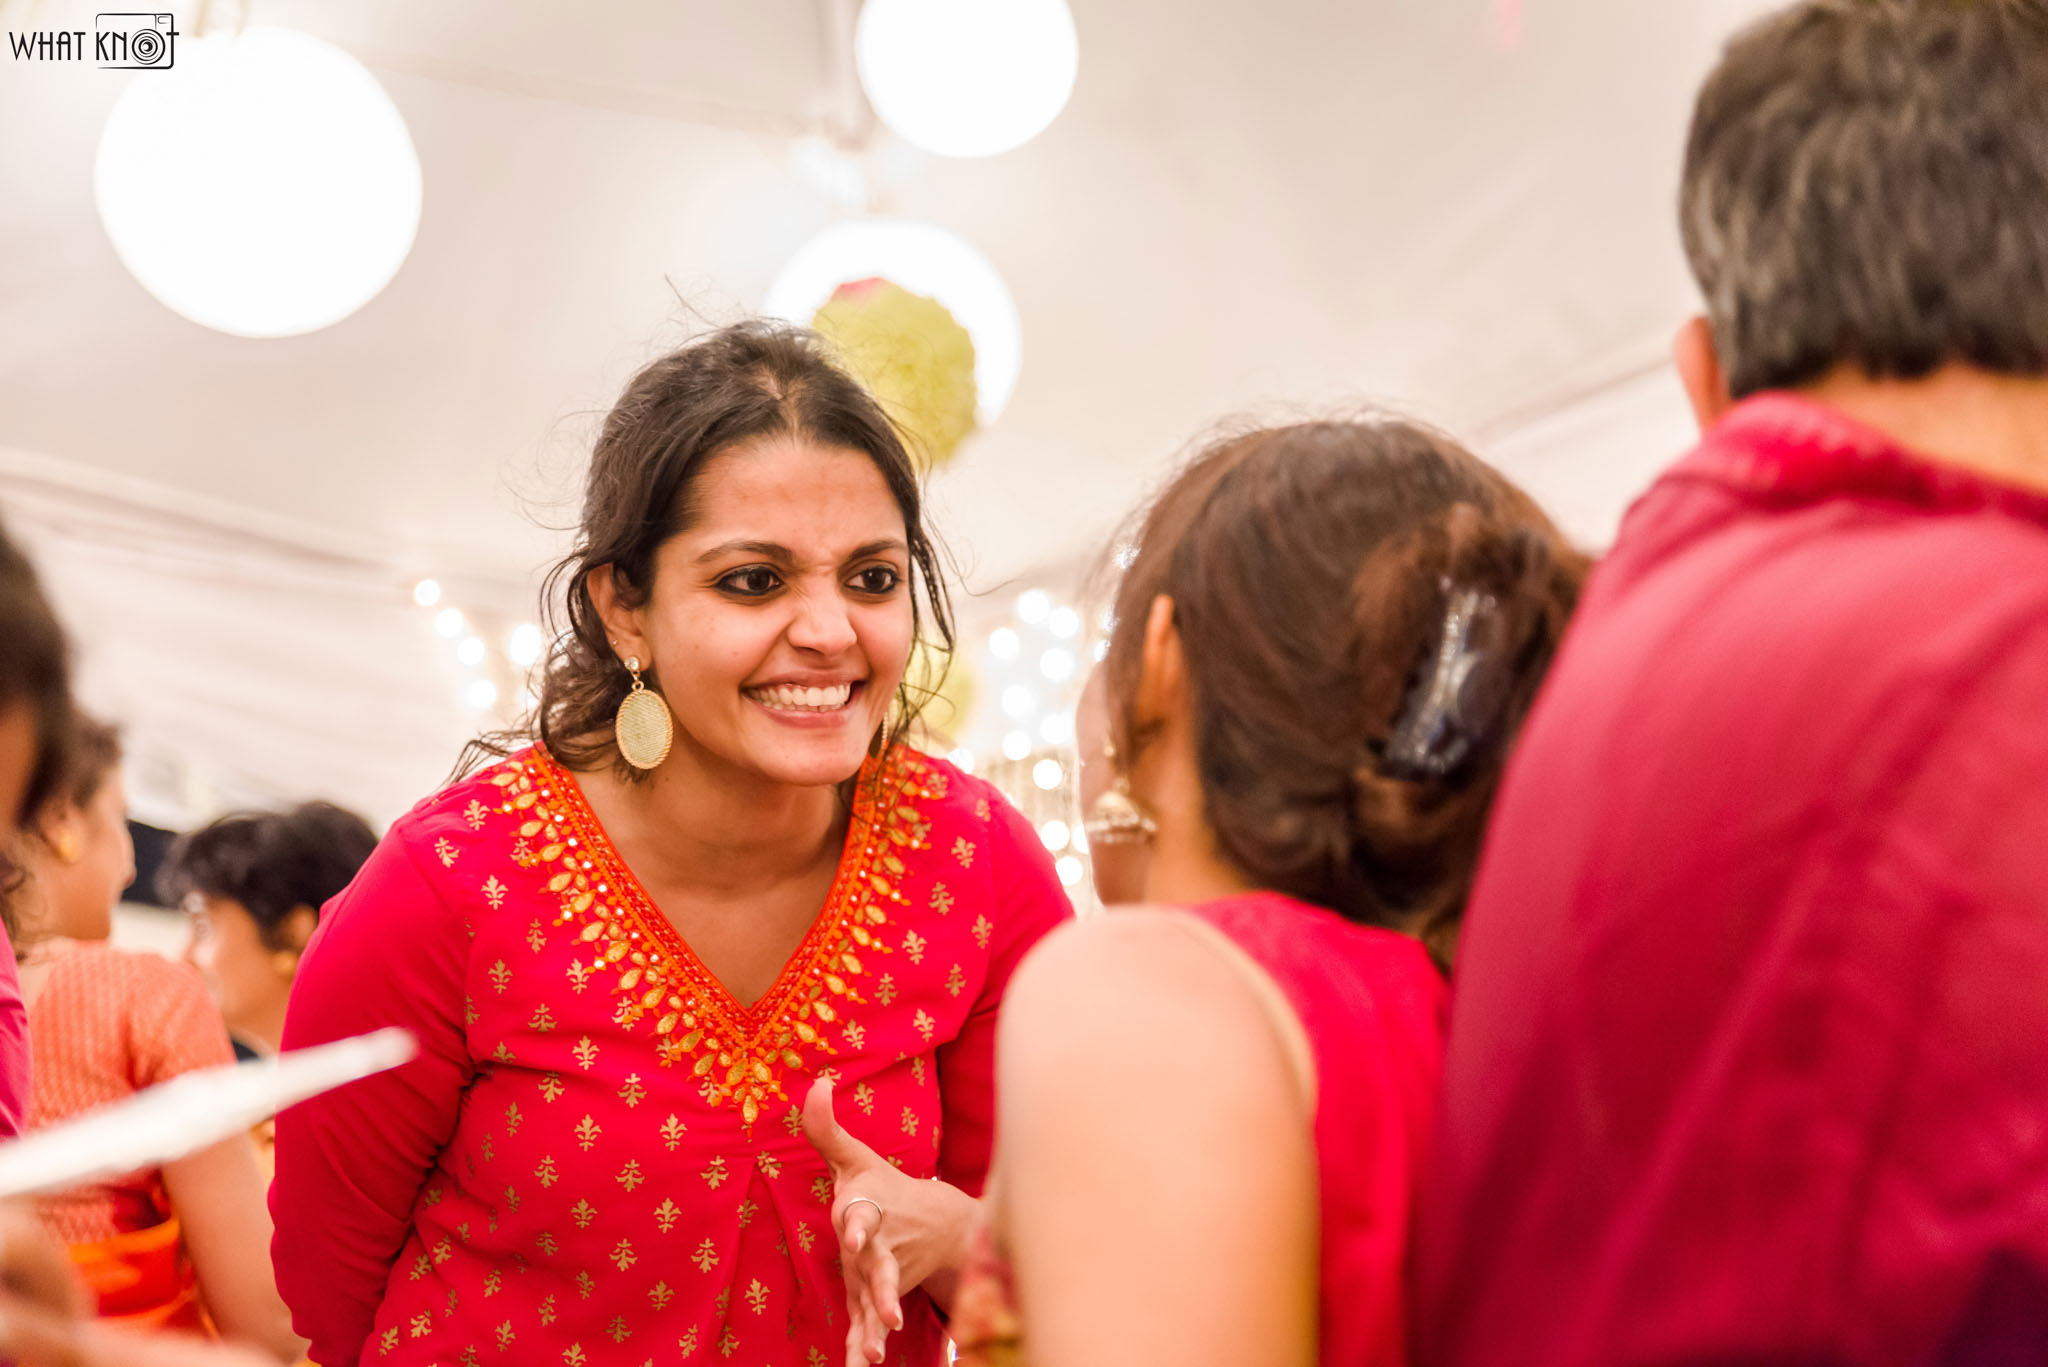 Candid-Wedding-Photography-WhatKnot-Marathi-55